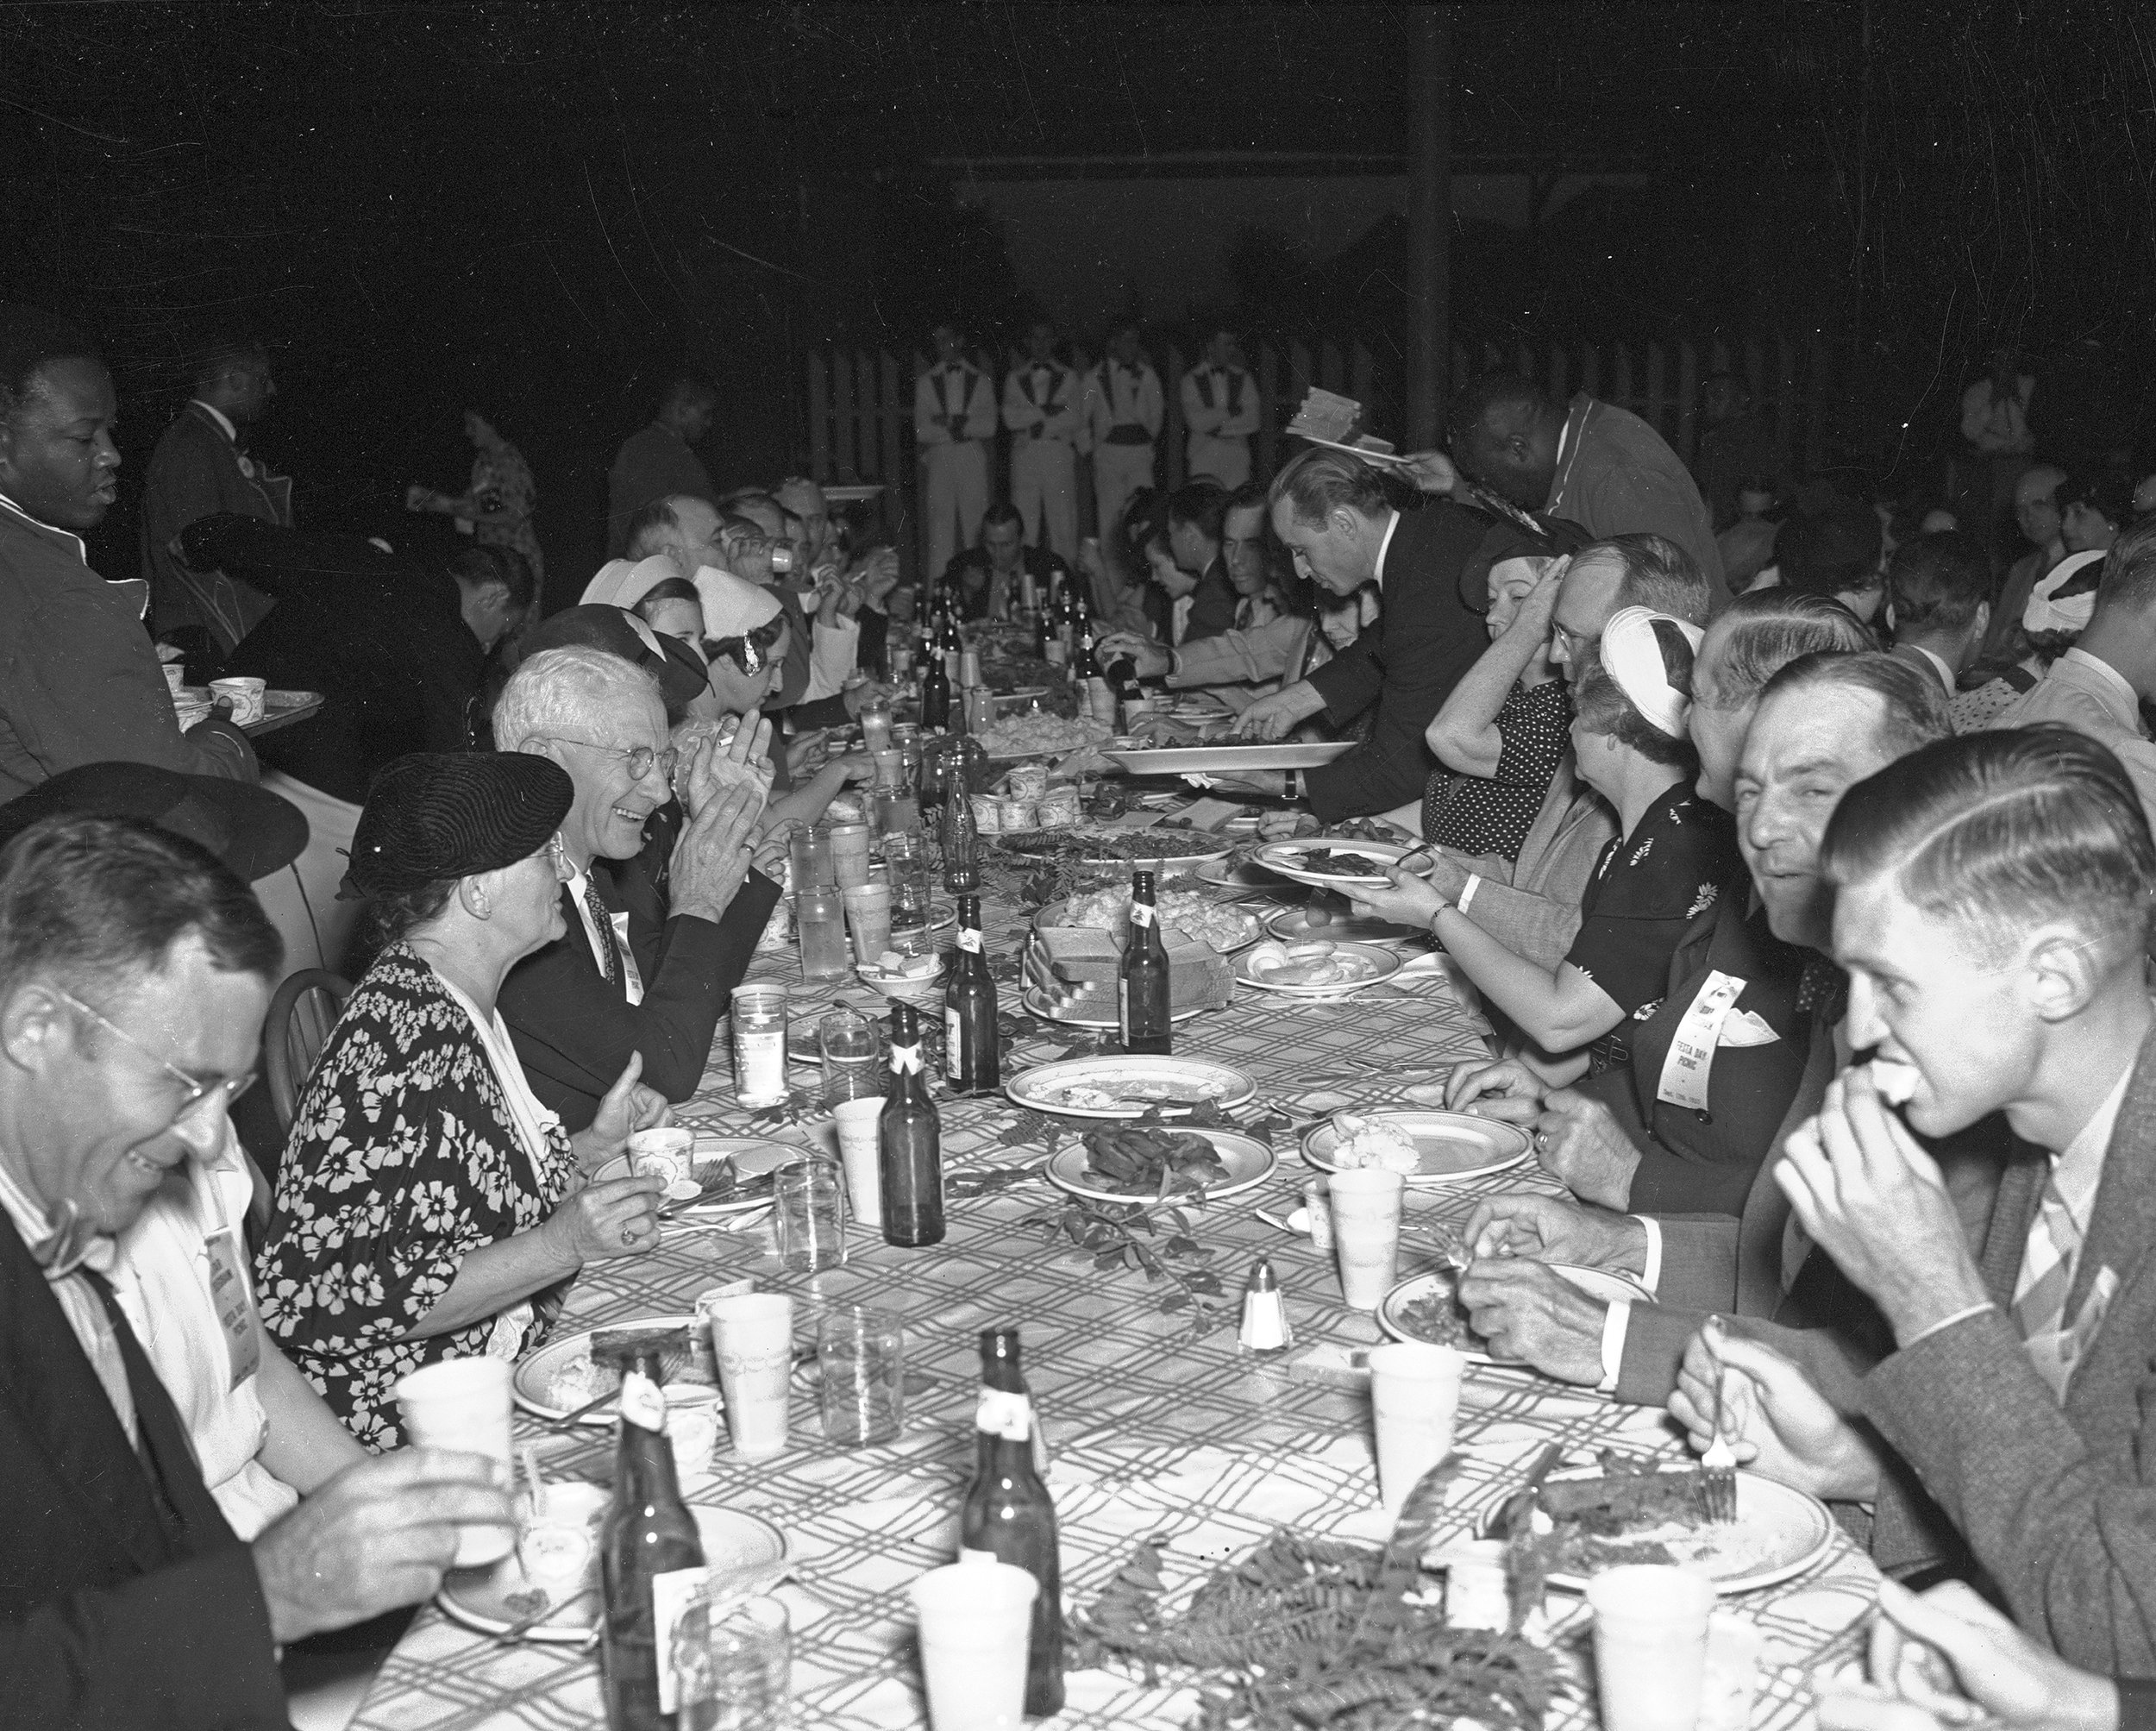 Table at 1937 S-T picnic 10005754.jpg